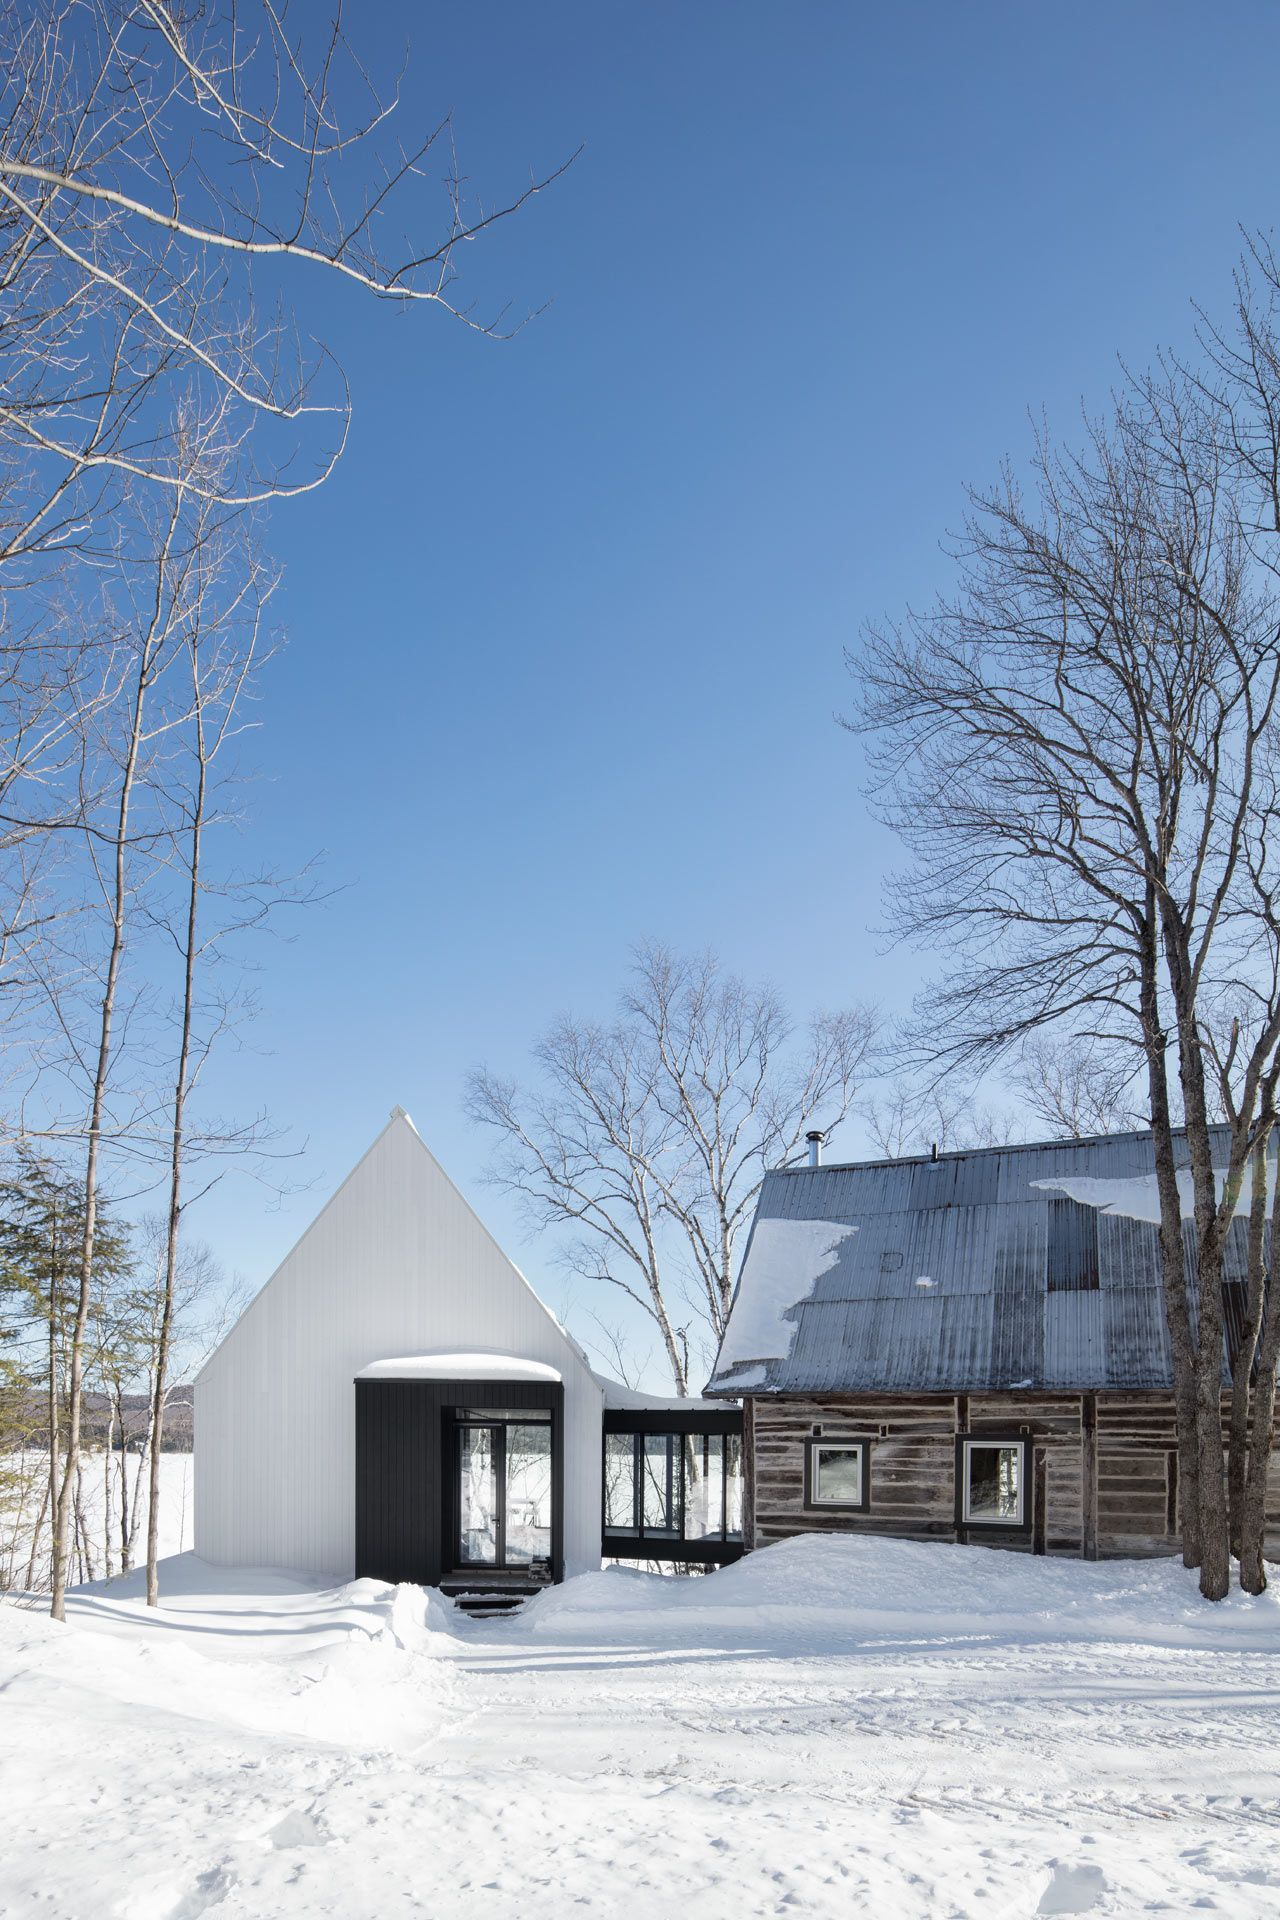 Acdf Architecture Designs A Modern Prism Like Addition For Traditional House In Canada Architecture Architecture Design House Architecture Design